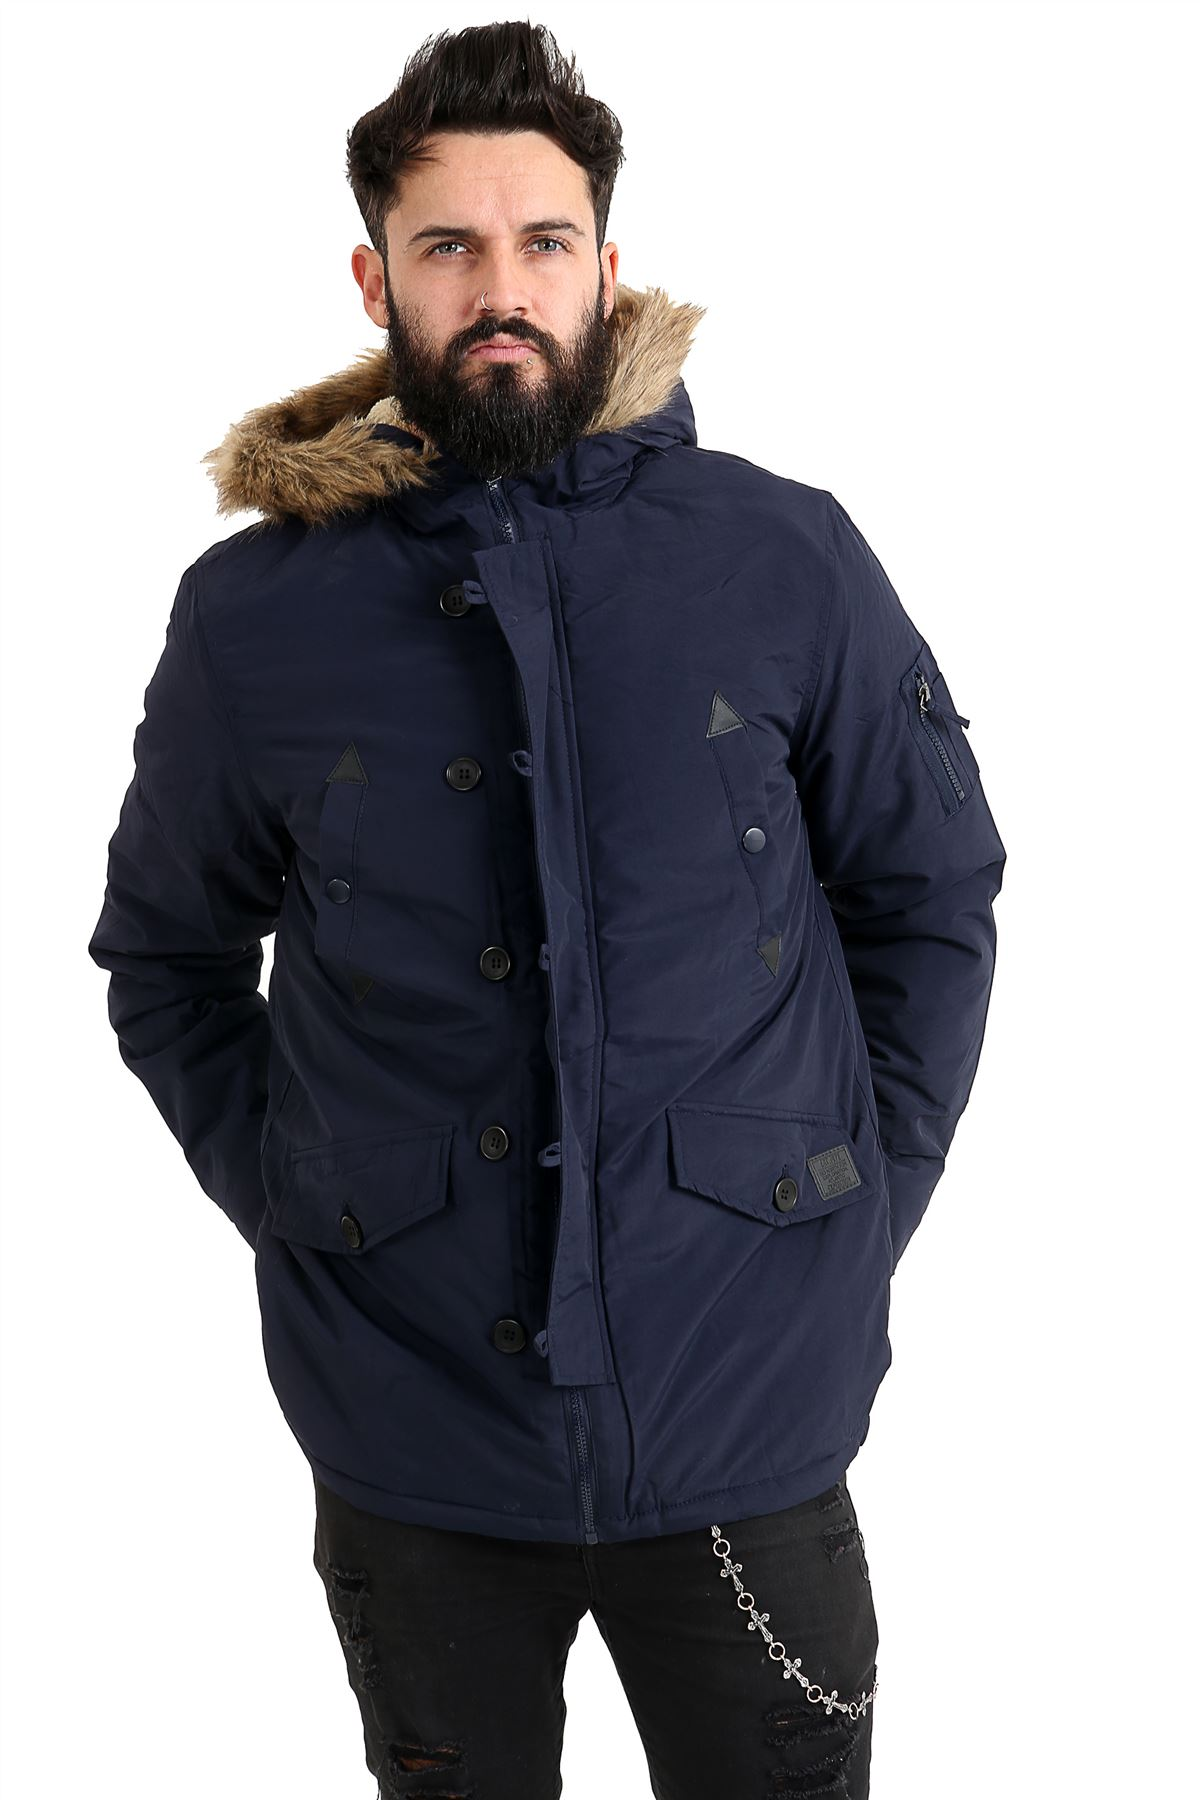 New-Mens-Fur-Hooded-Parka-Jacket-Warm-Winter-Thick-Padded-6-Pockets-Parker-Coat